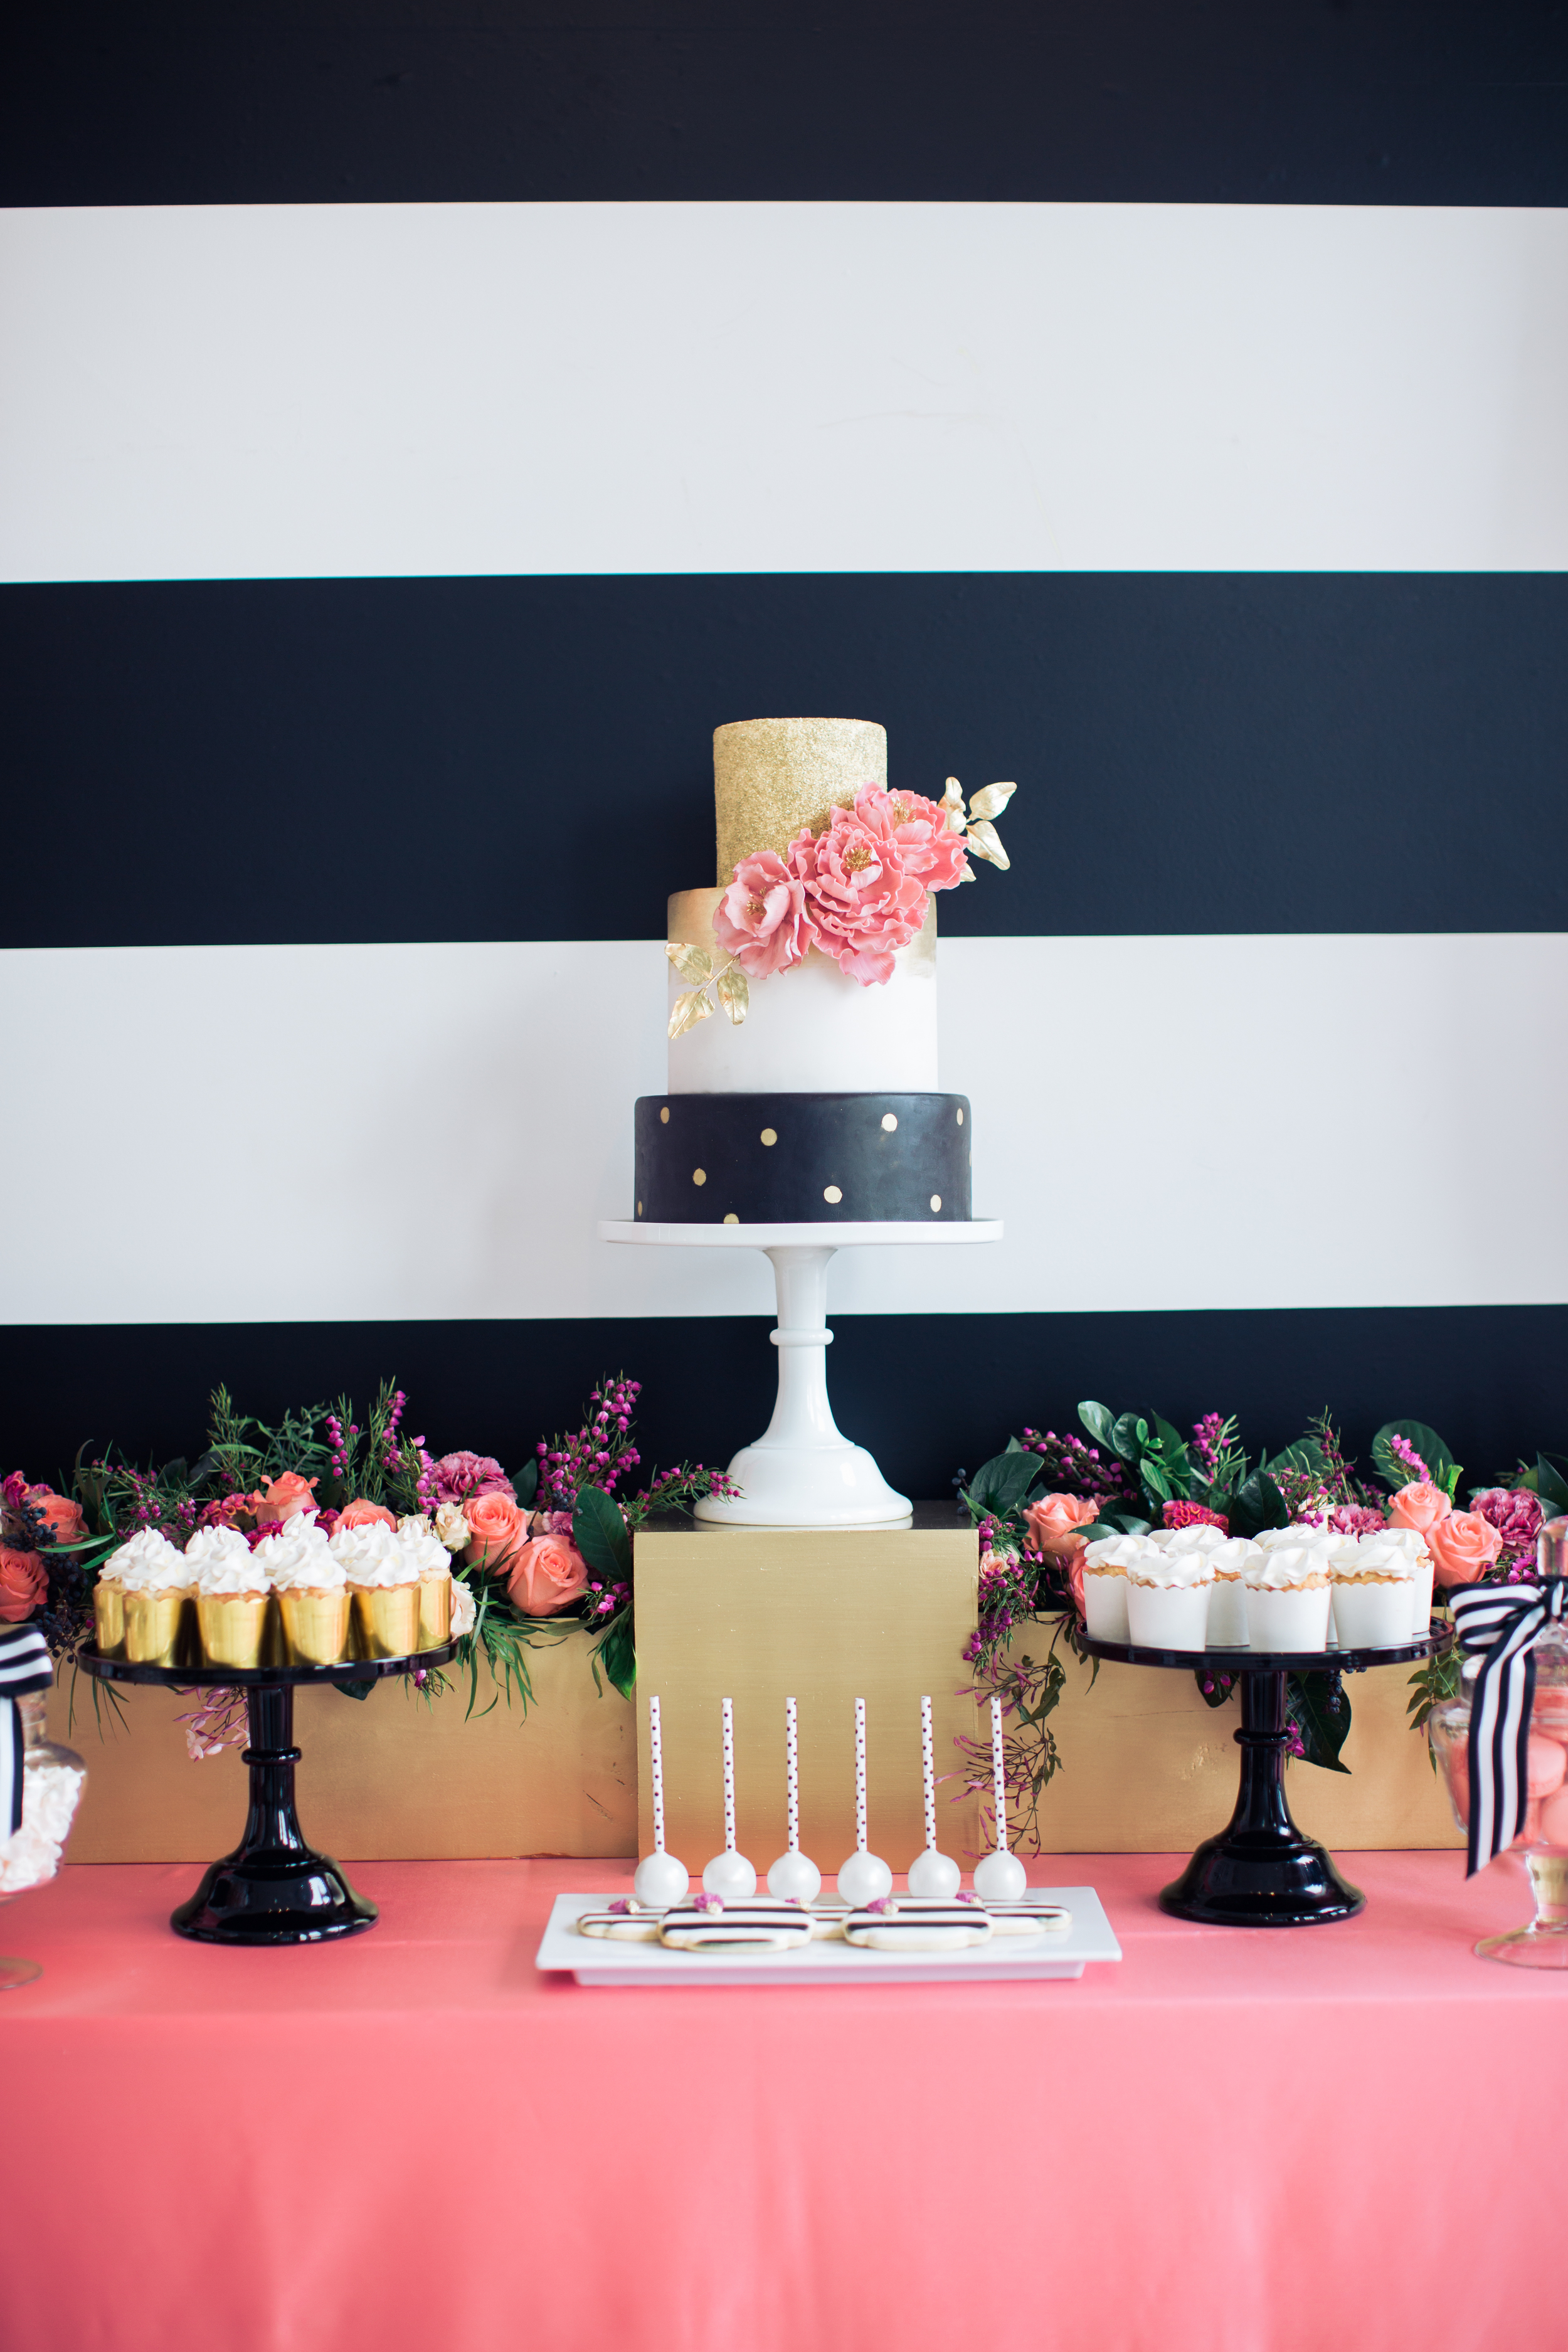 Styling: Girl Friday Creative | Photos: Poly Mendes Photography